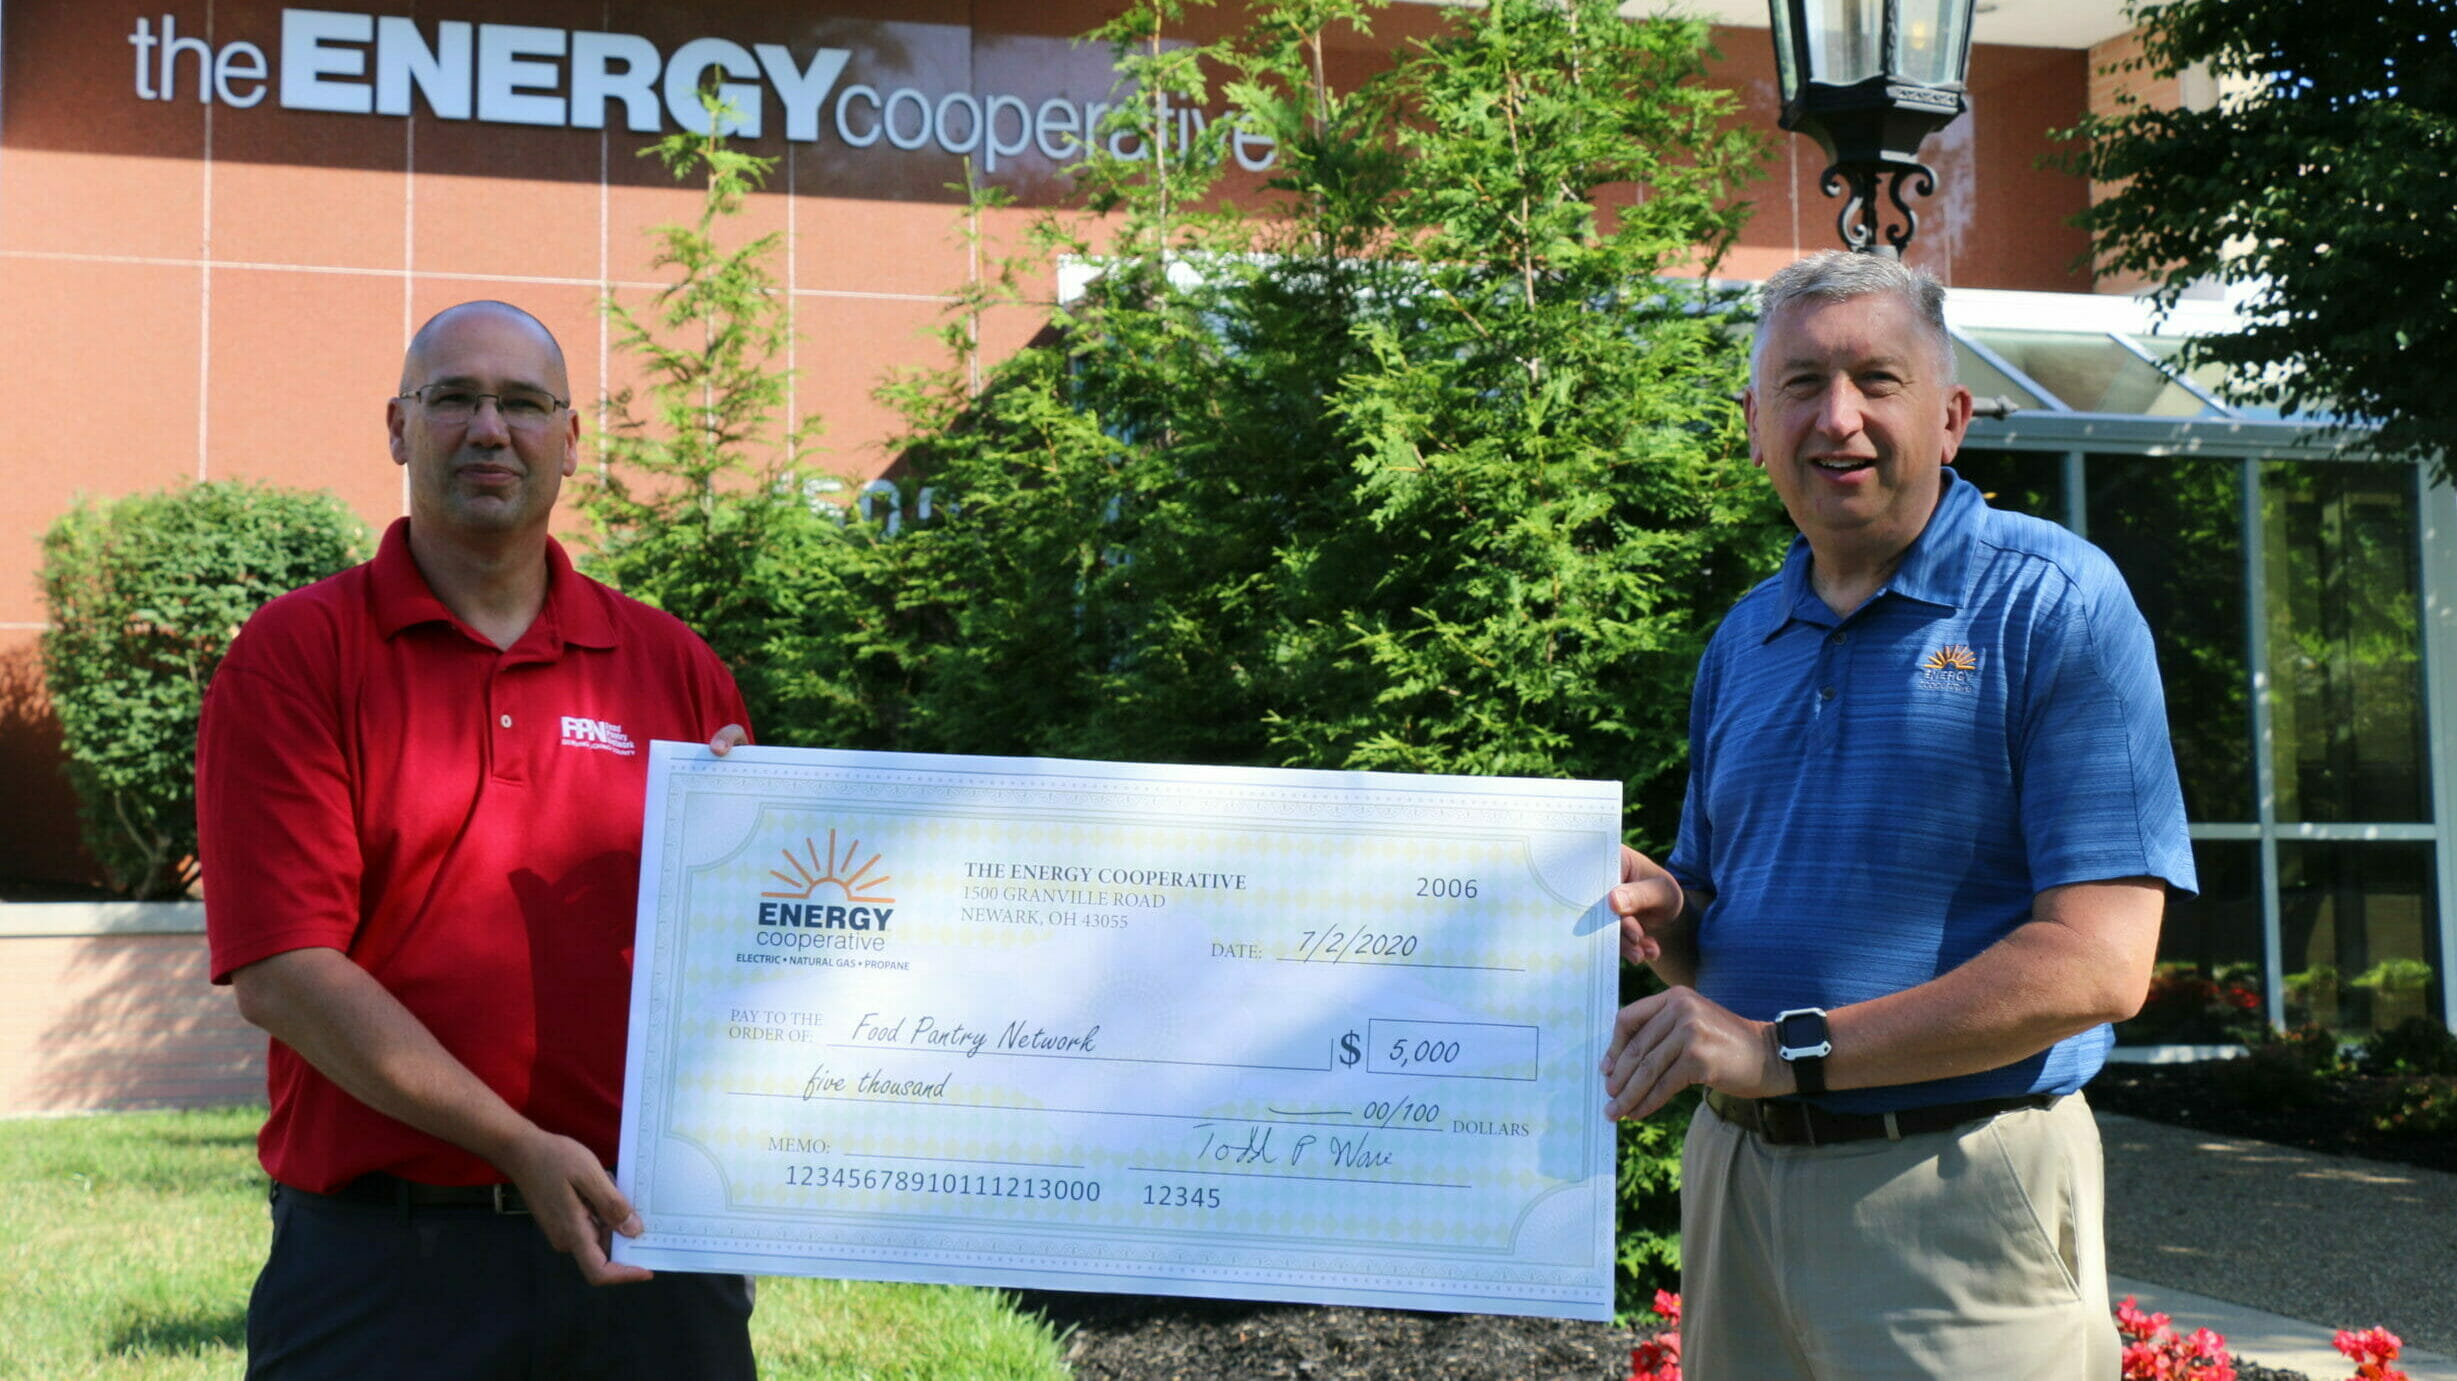 Donation to the Food Pantry Network of Licking County